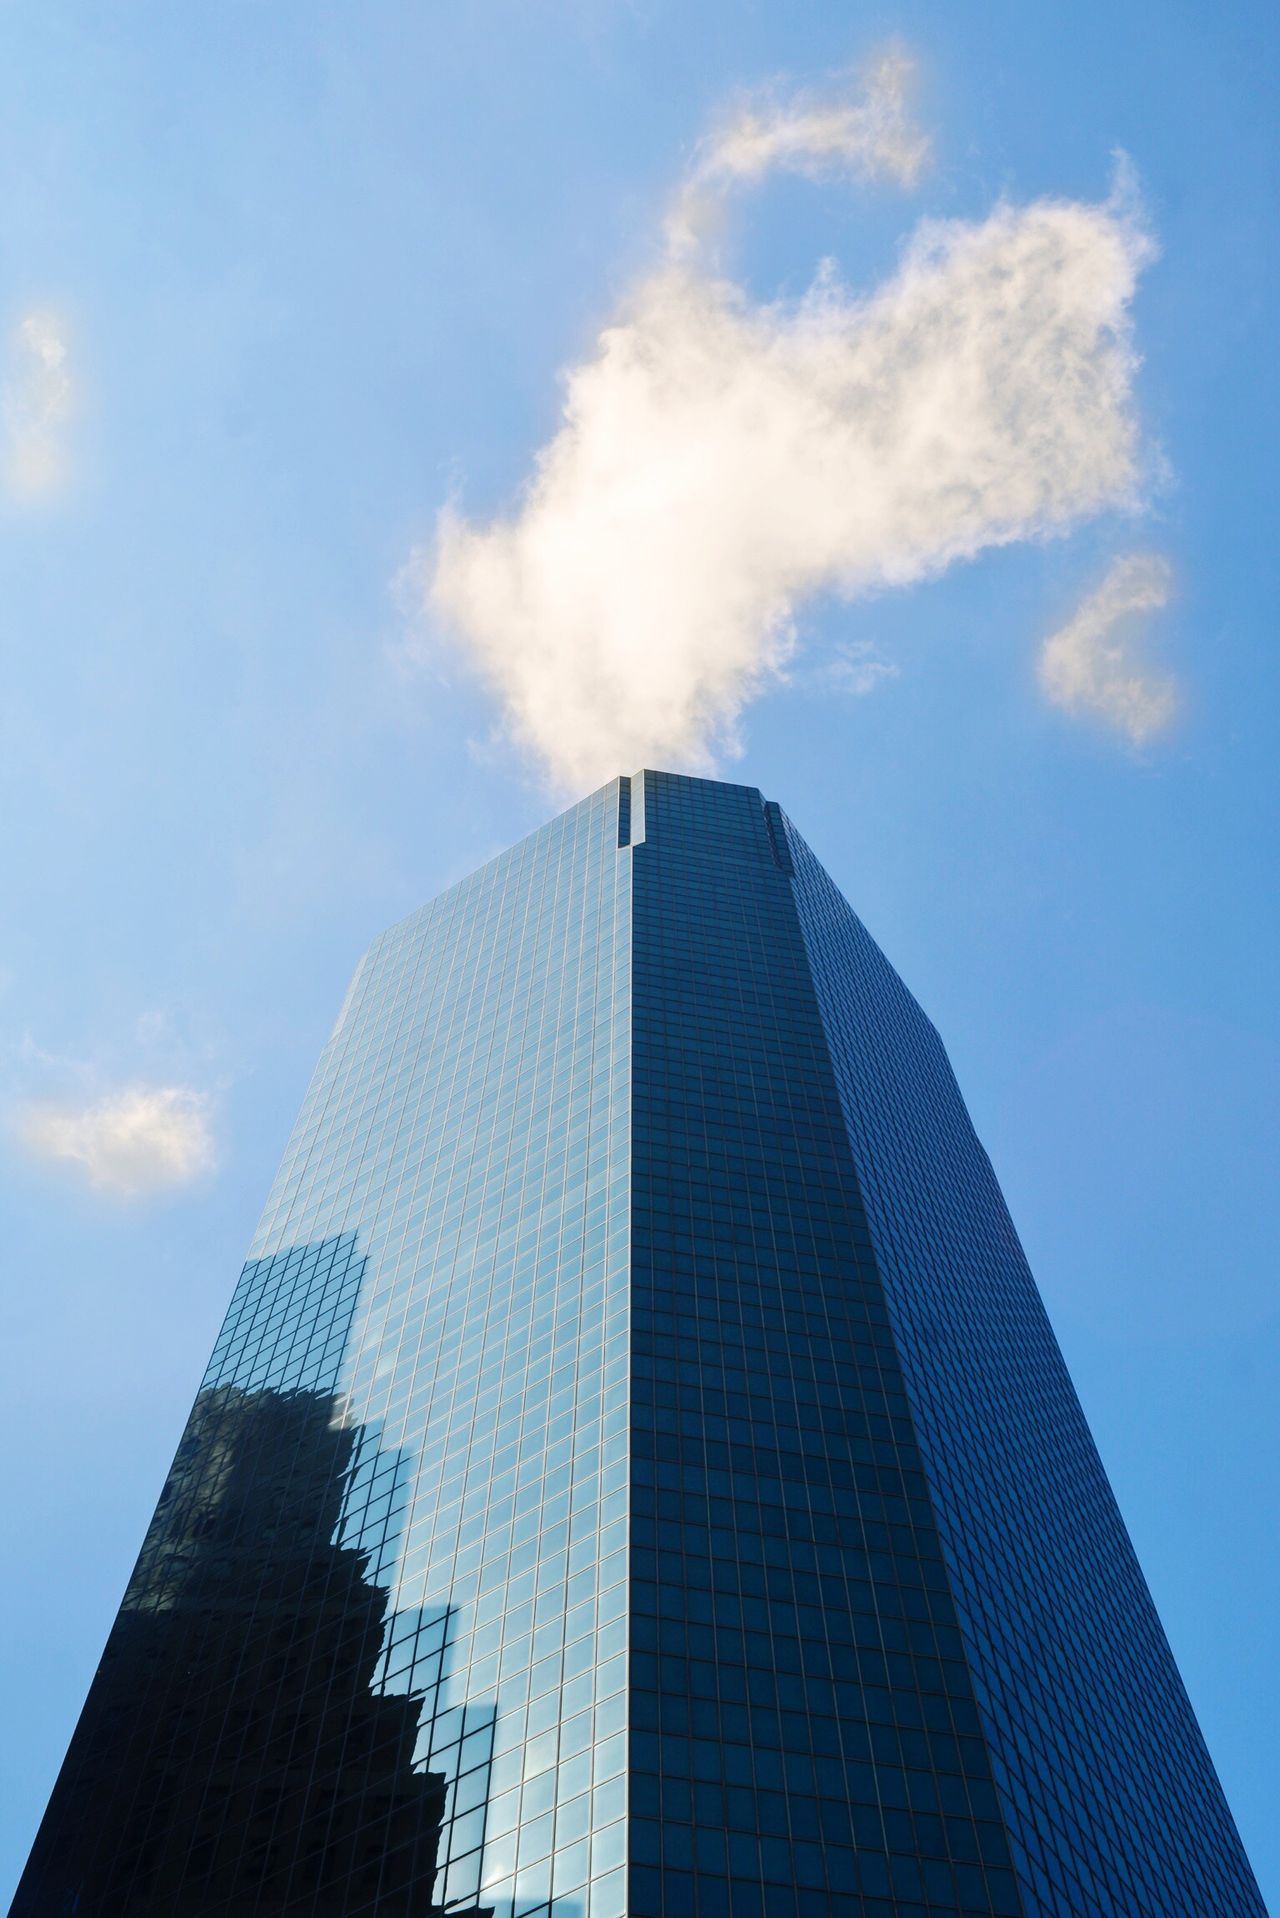 Smoke Emmitting Clouds. New York, USA. Architecture Building Exterior Low Angle View Built Structure Sky Skyscraper Modern No People City Day Outdoors Cloud - Sky Tall Chance Encounters